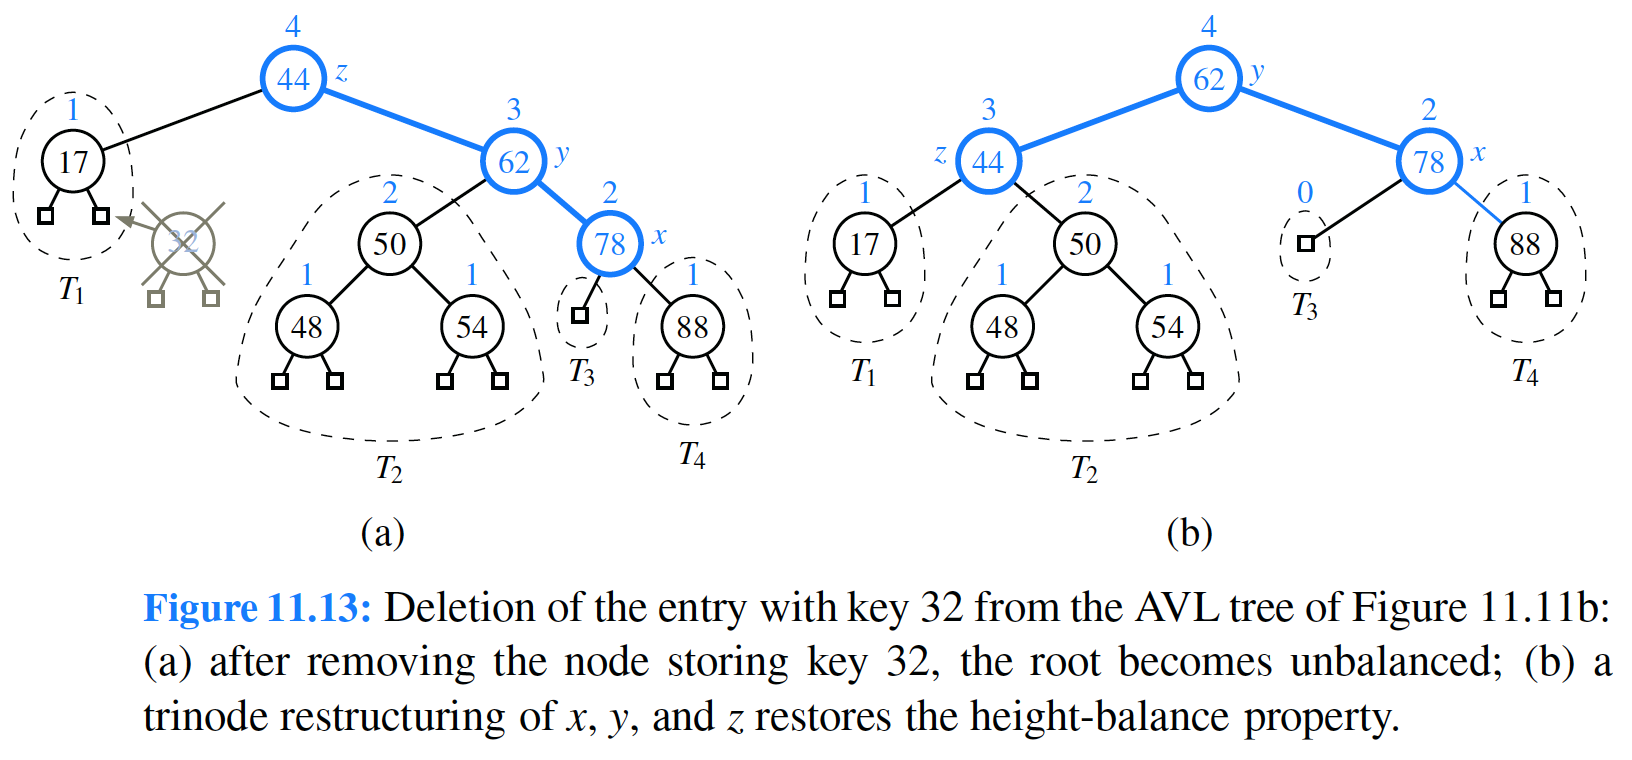 (17 z (44) 78 48 Ti , - - - - T2 (a) (b) Figure 11.13: Deletion of the entry with key 32 from the AVL tree of Figure 11.11b: